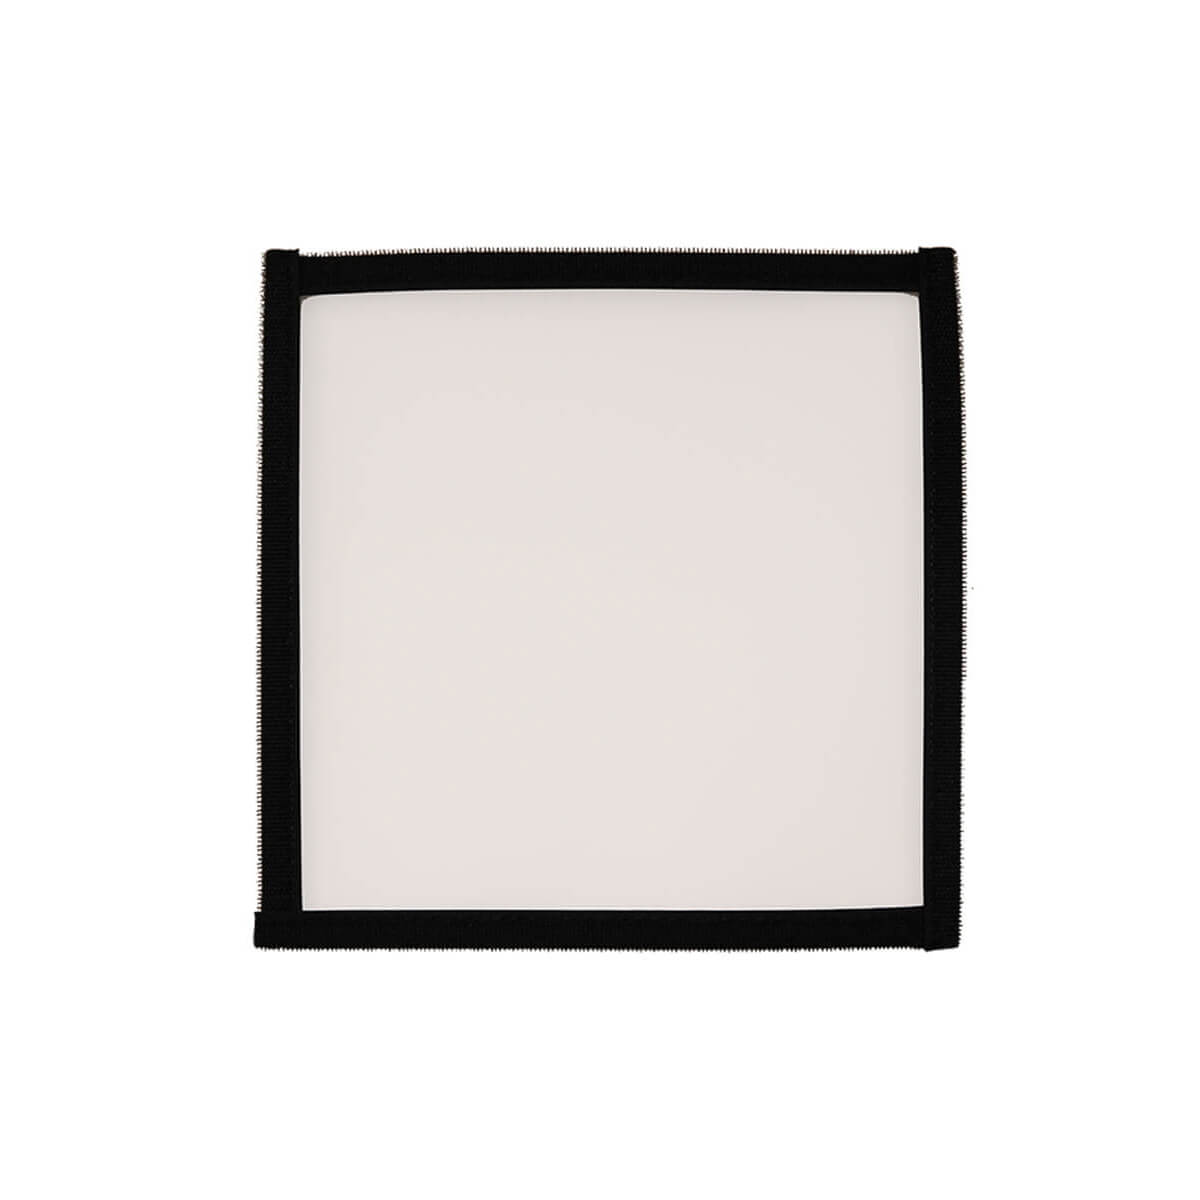 Sola ENG Diffuser Filter only (for Softbox)